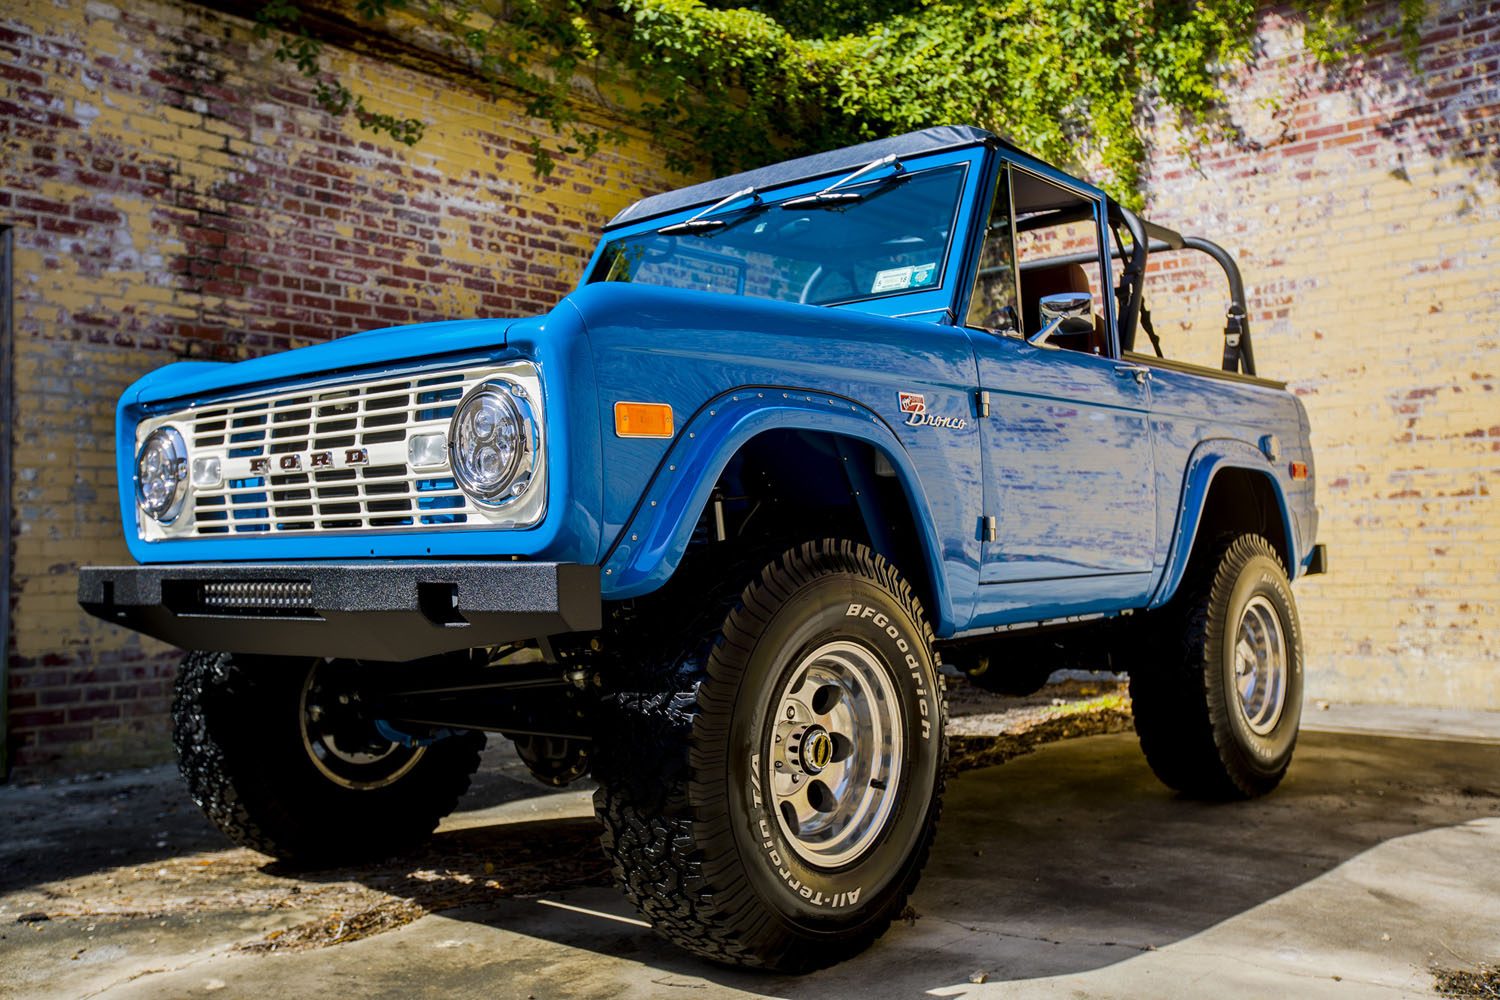 There's a new Bronco coming, but what about a restored ...